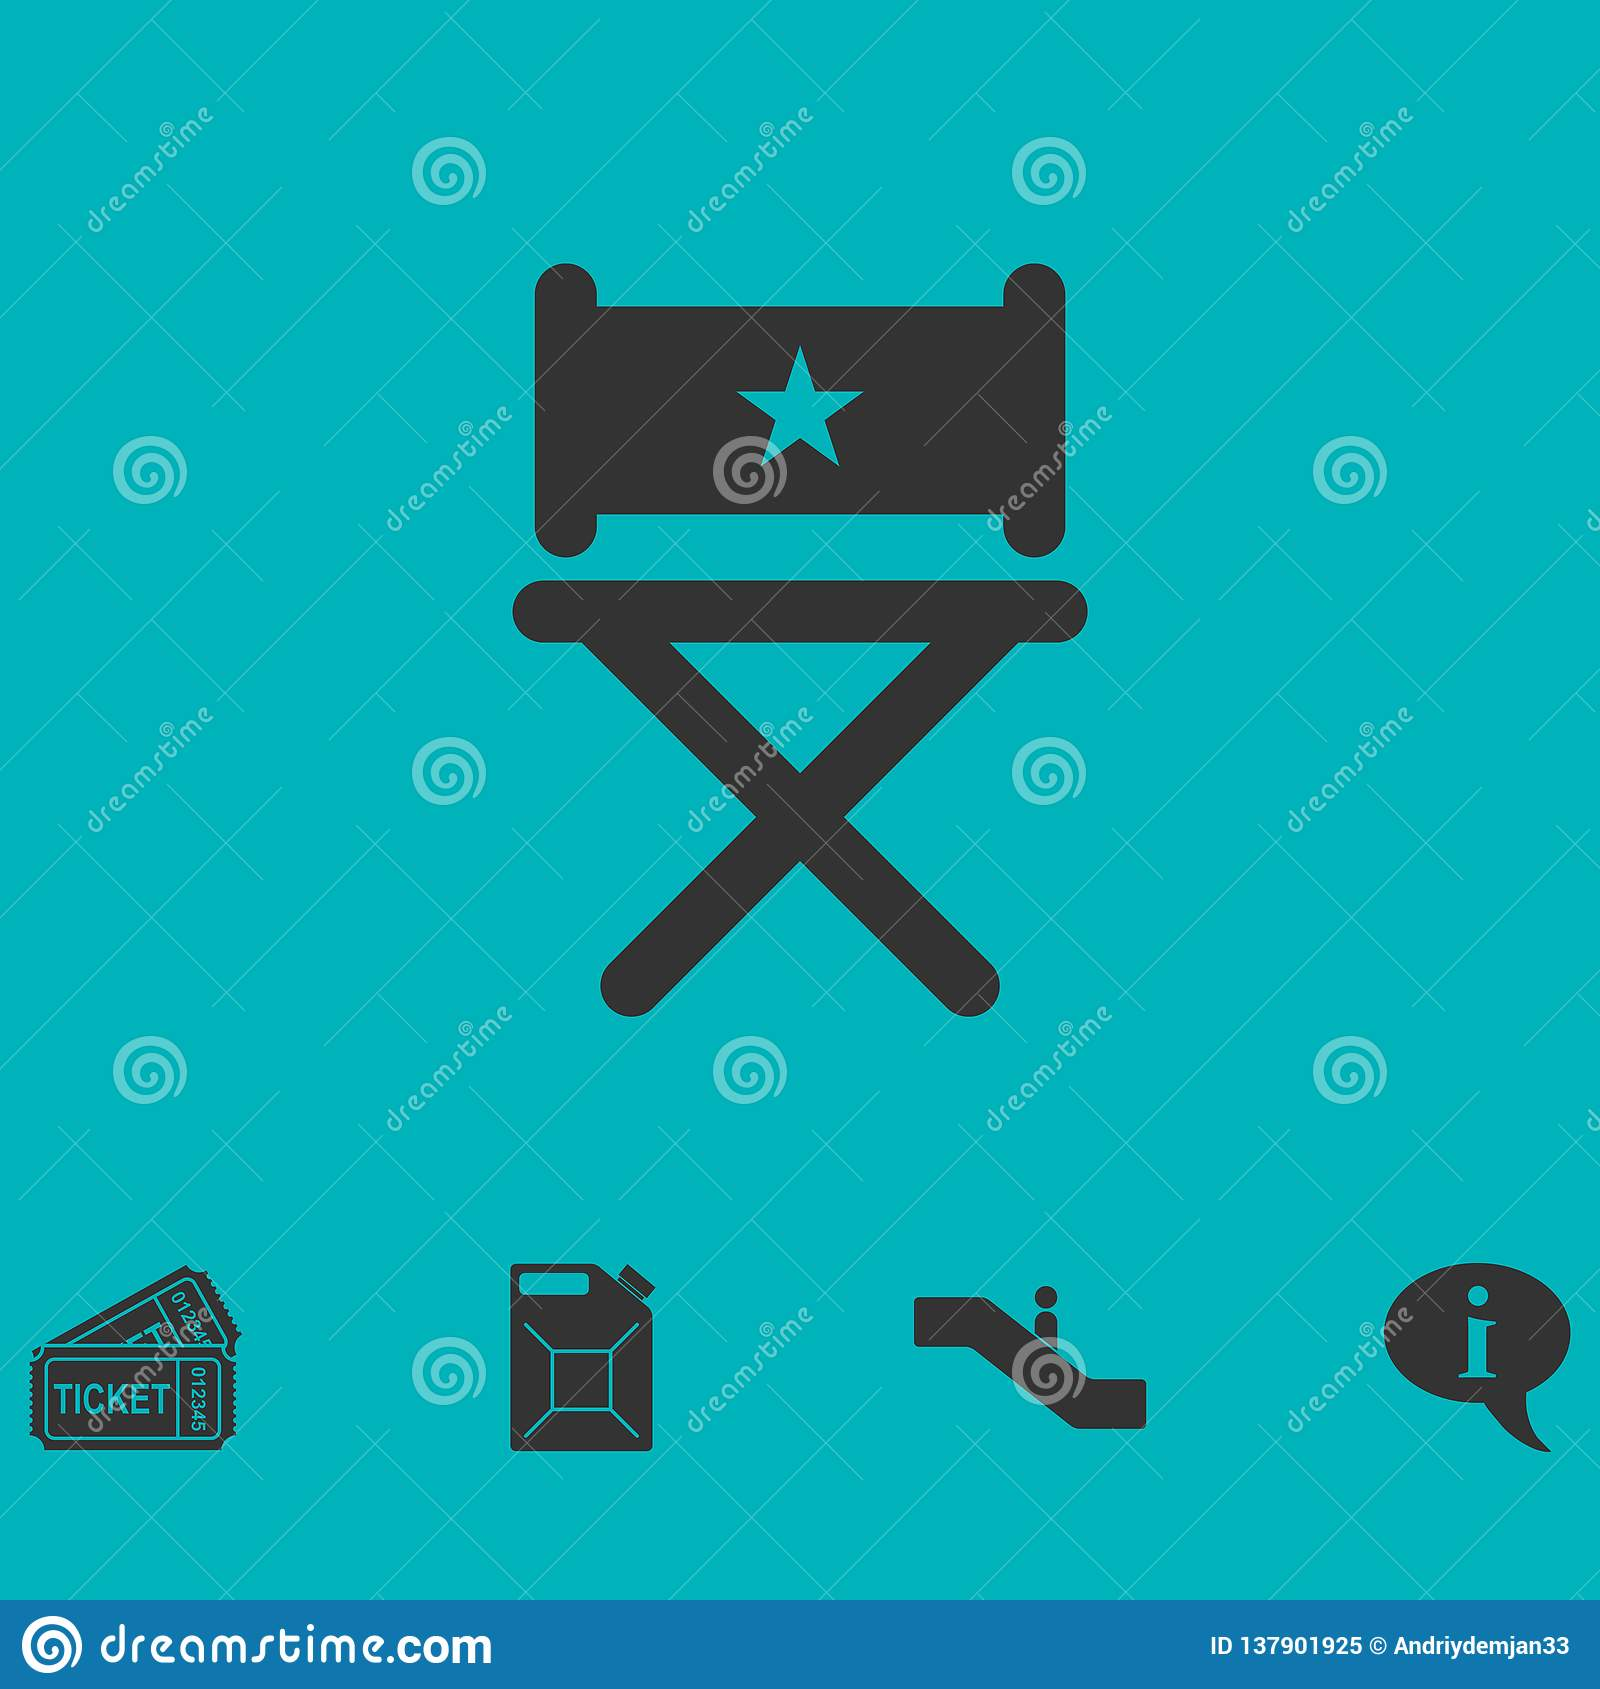 Chair icon flat